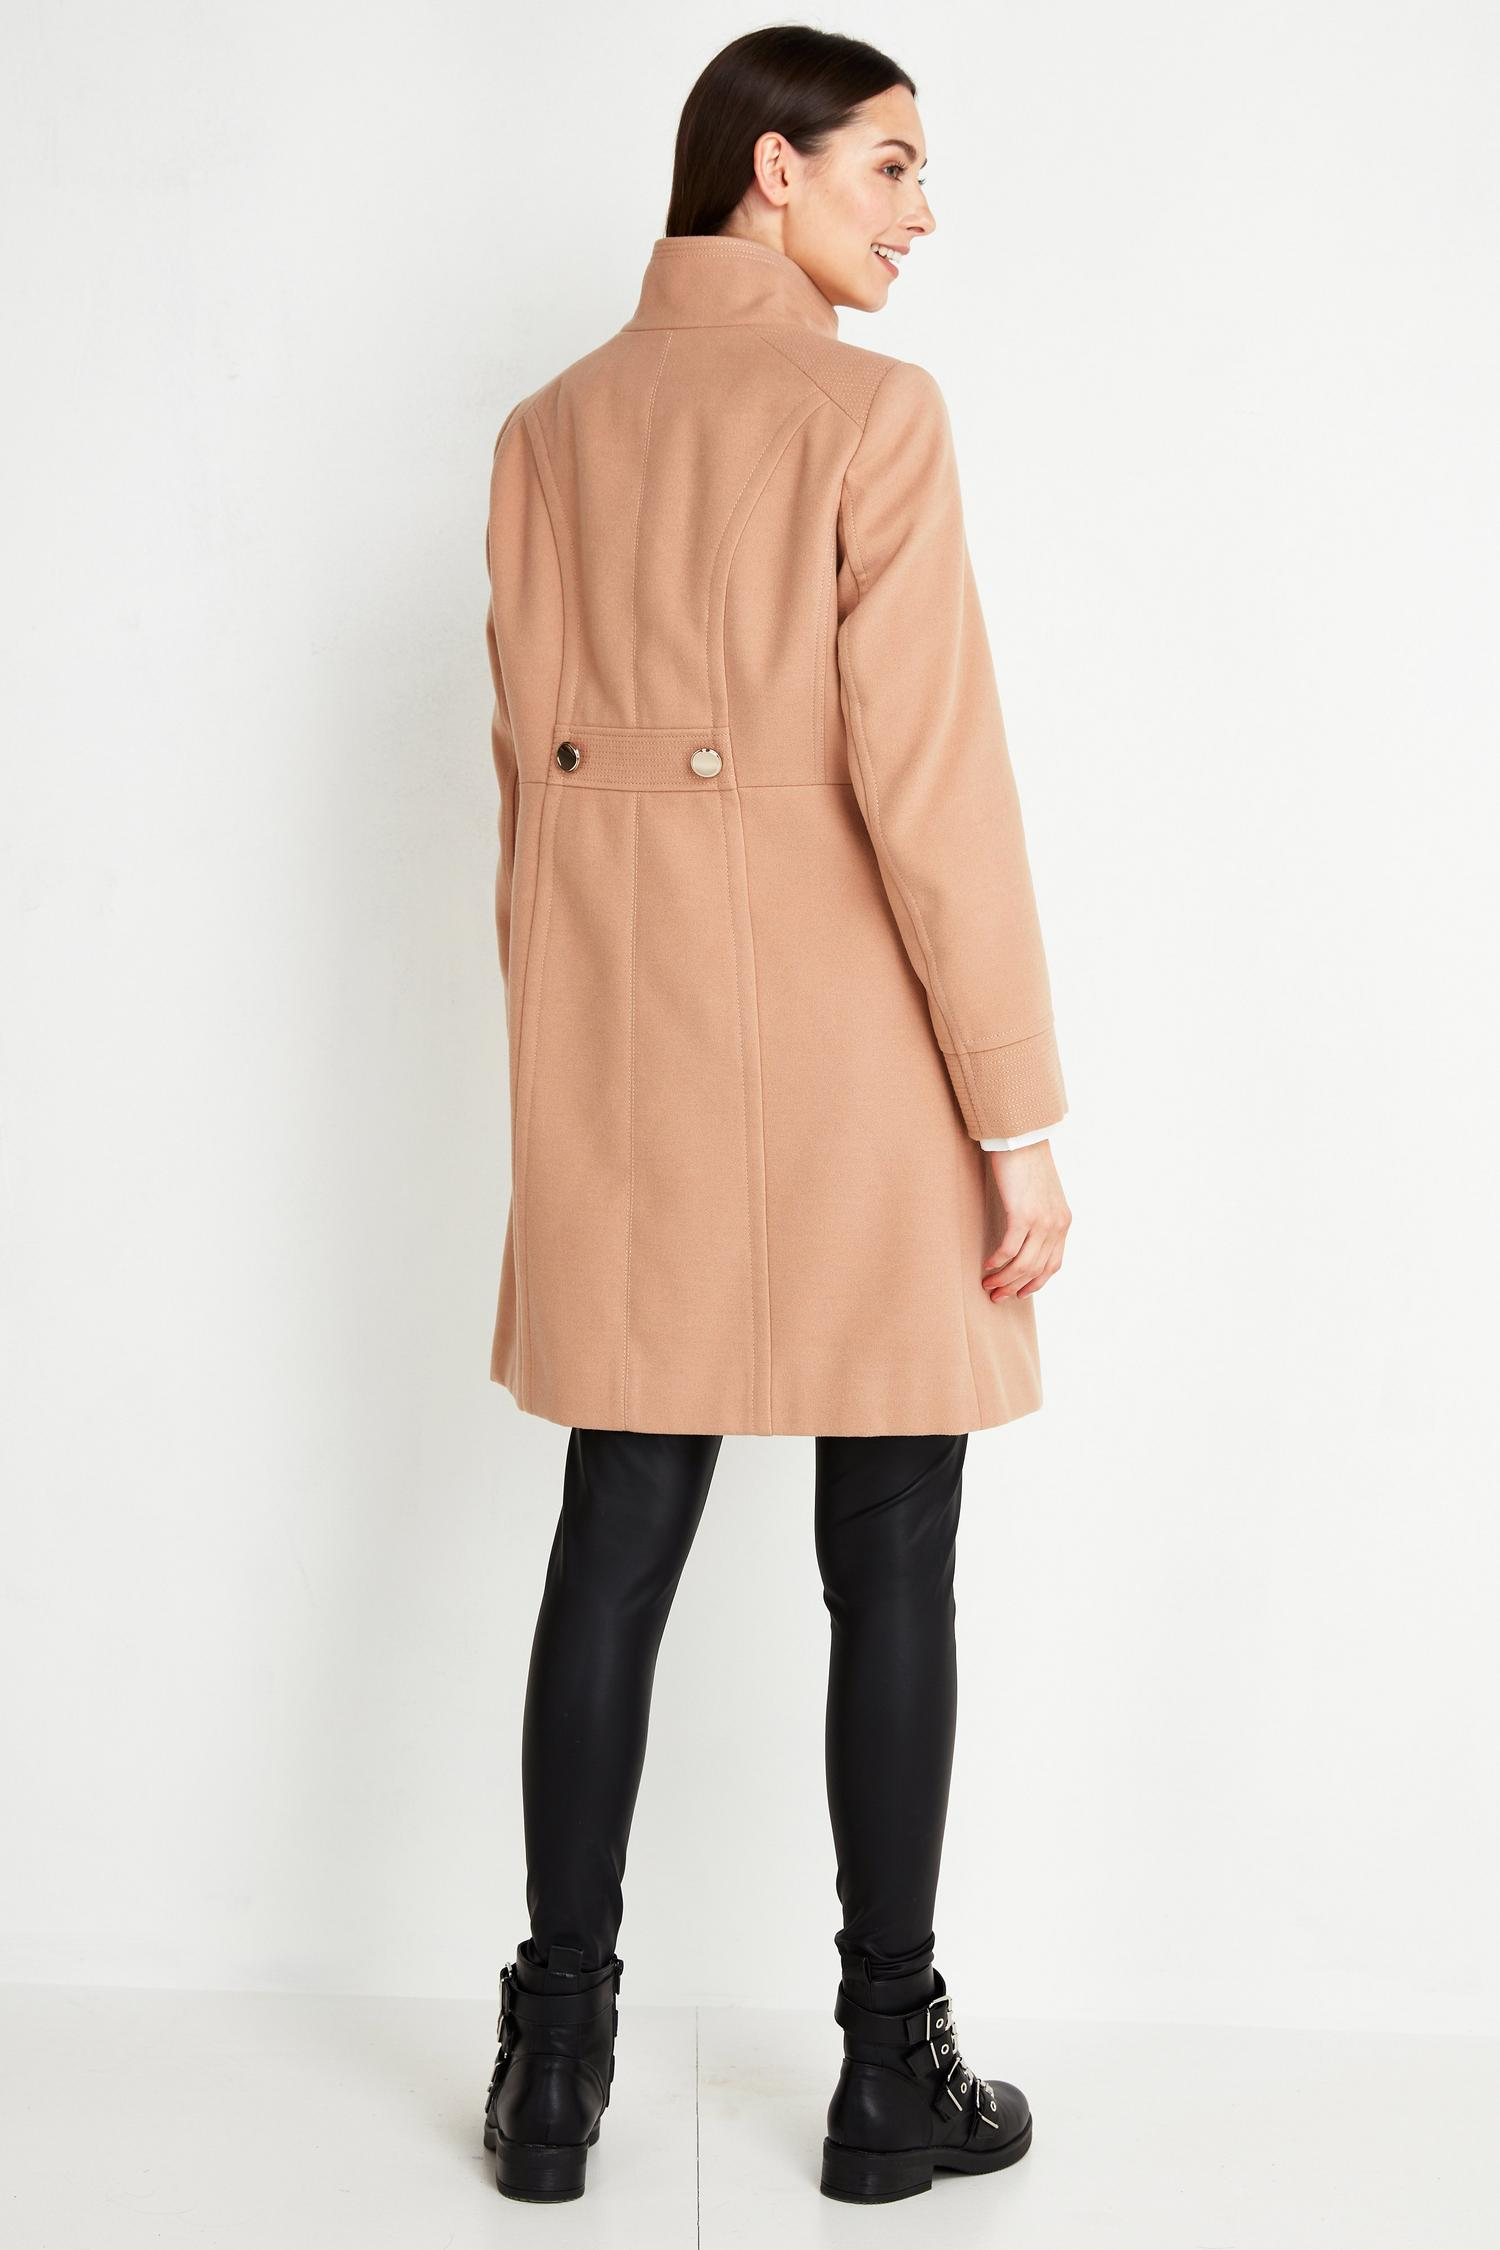 111 TALL Camel Faux Wool Funnel Neck Coat image number 2